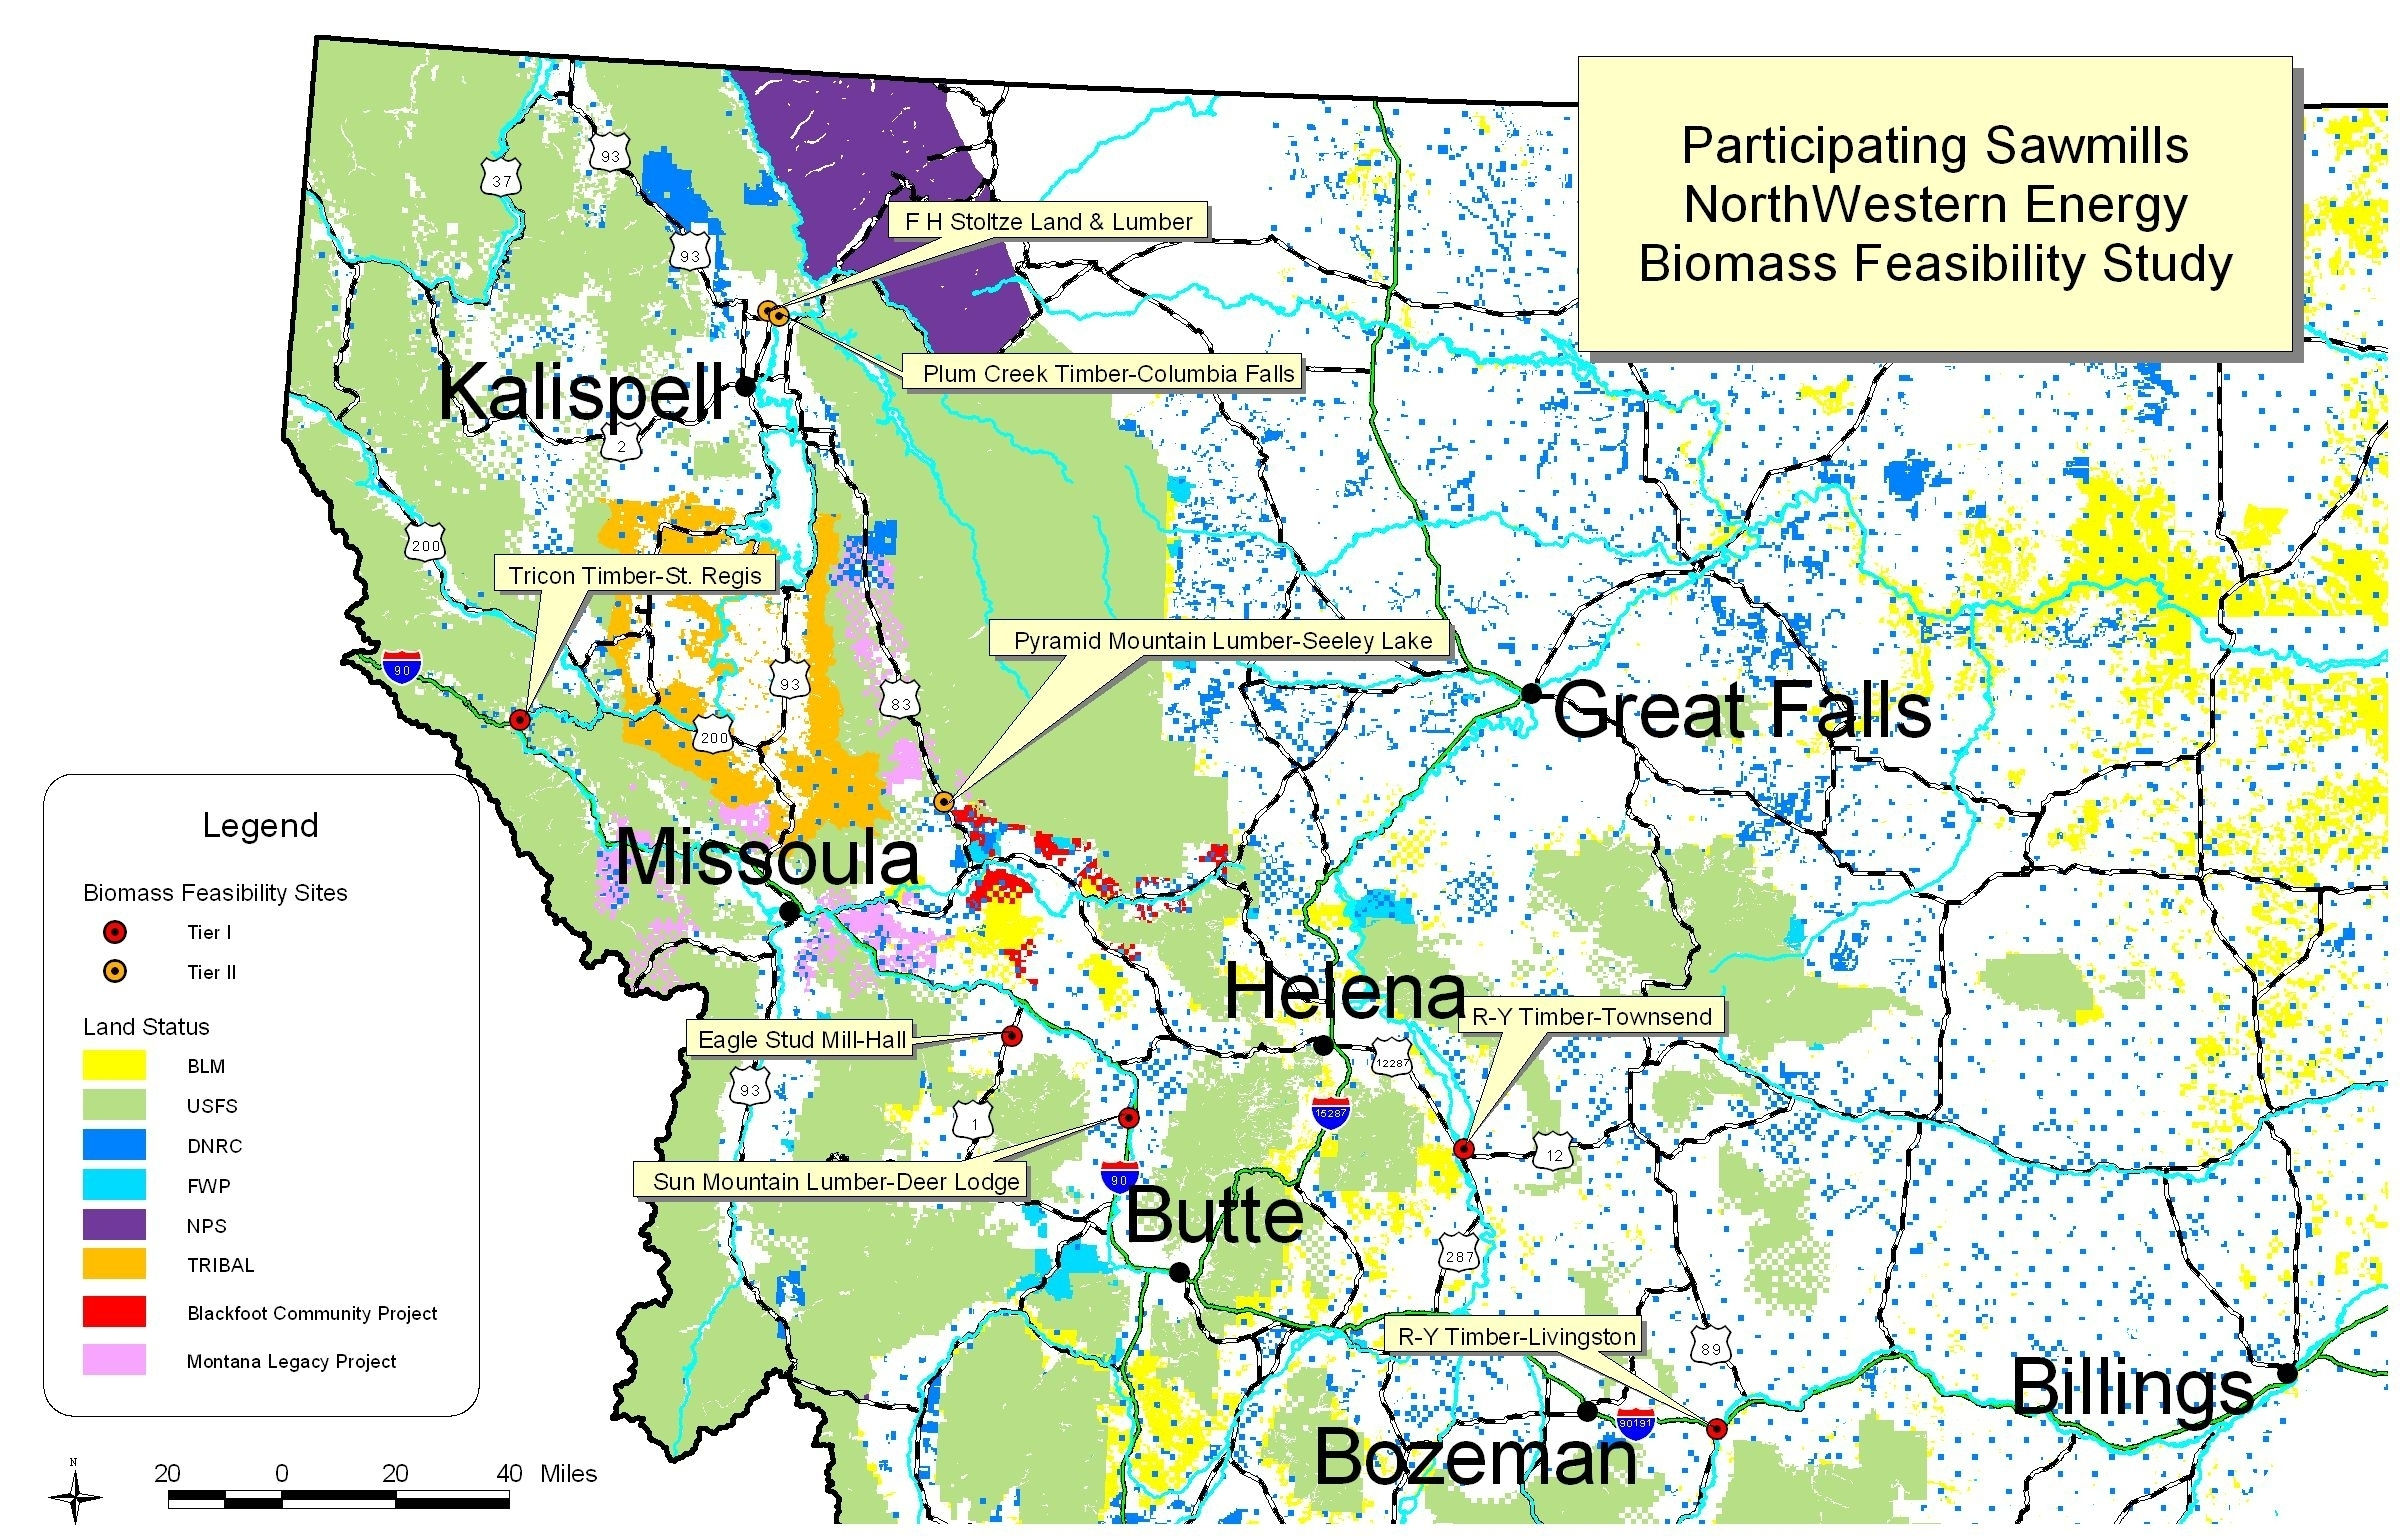 Map: Participating Sawmills in Biomass Energy Feasibility Study